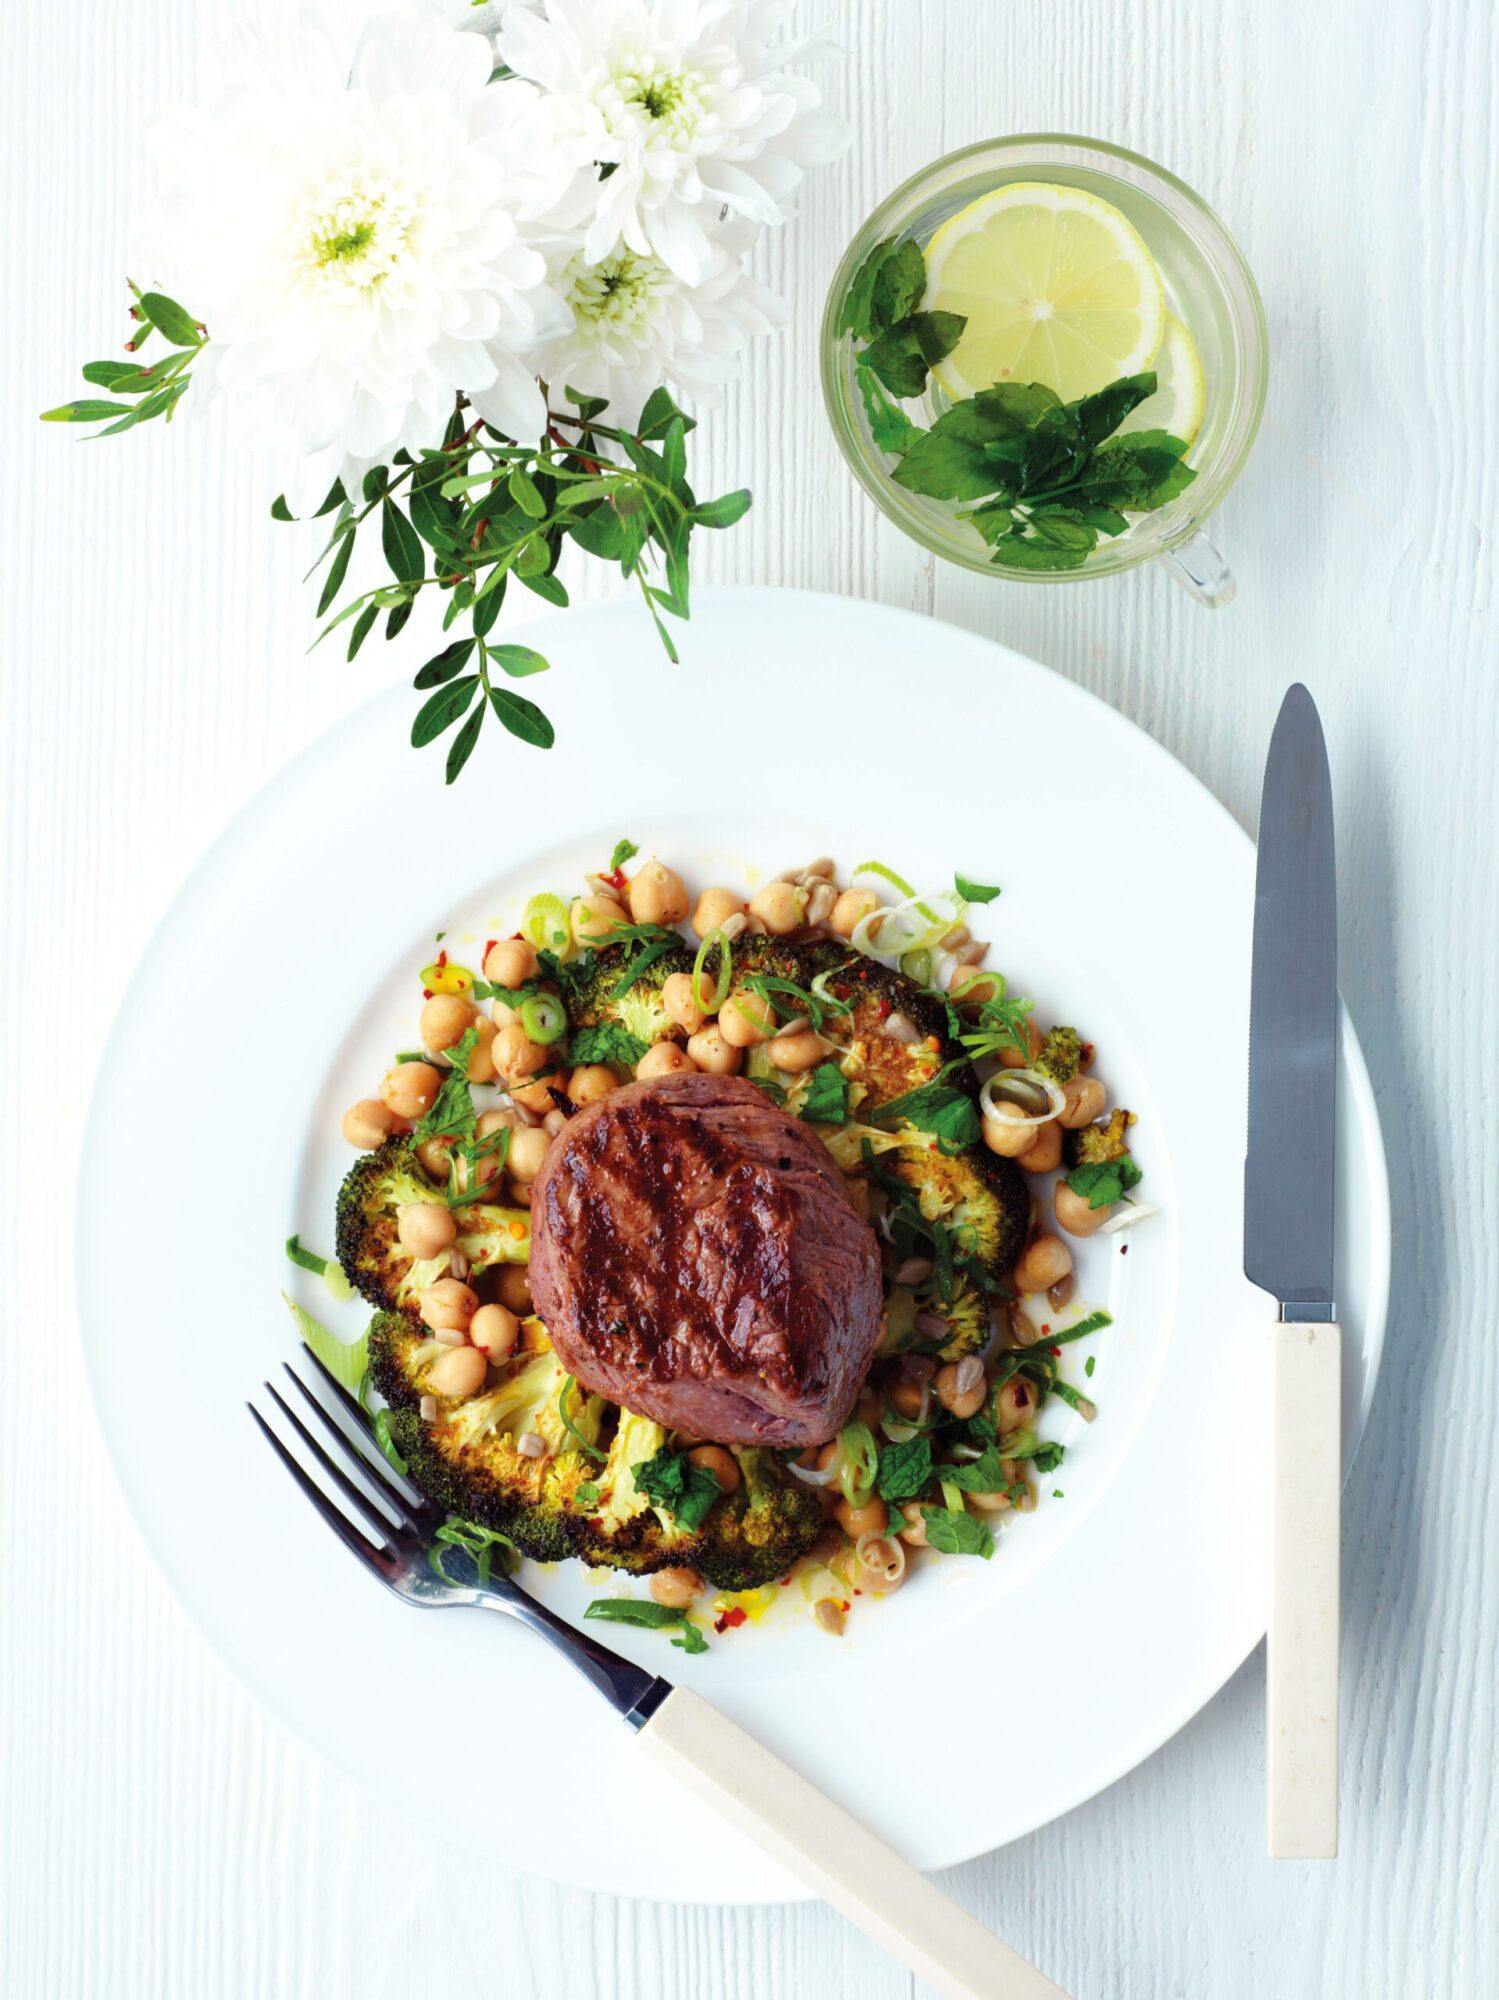 Griddled Beef with Crispy Broccoli and Chickpeas